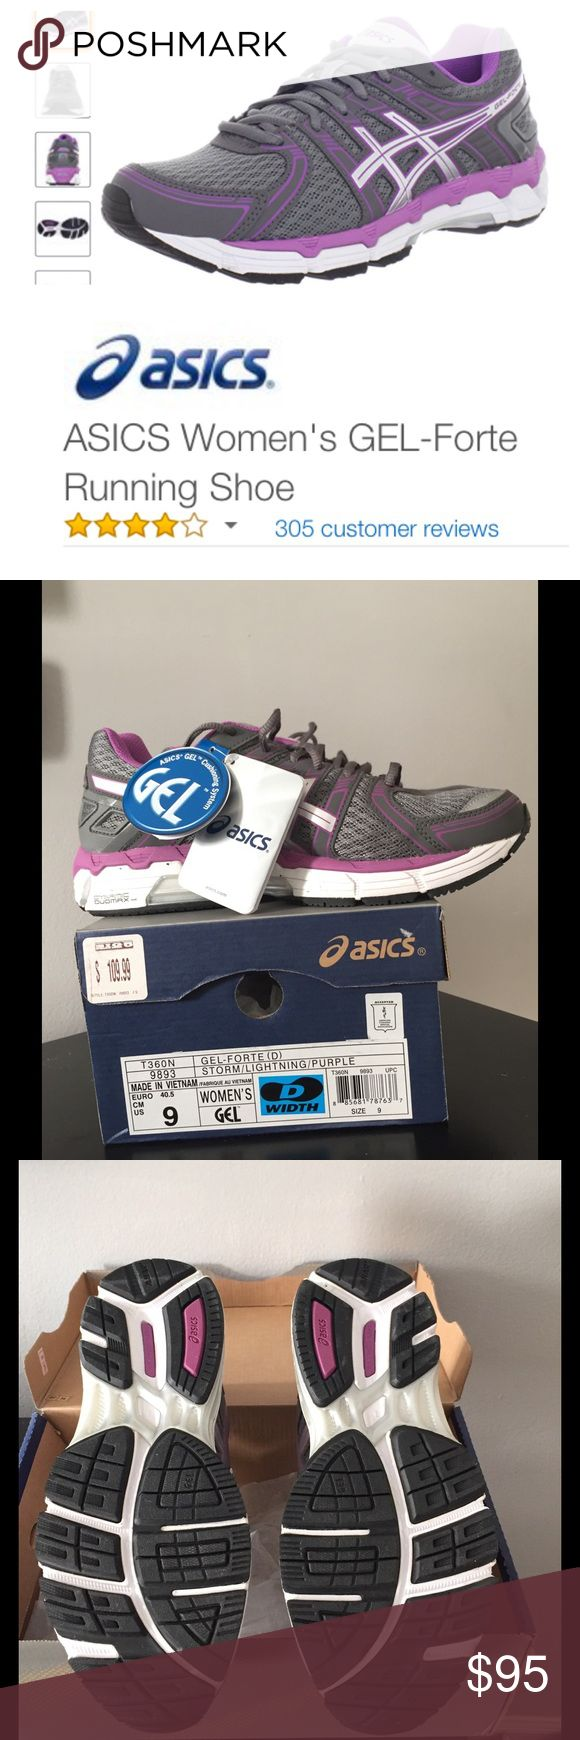 "Asics Gel-Forte Running shoe, 9D, NIB! Amazing running shoe.  Prepare to walk on air.  Approximately 1"" Dynamic Duomax sole with Asics Gel Cushioning System.  The colors are Storm/Lighting/Purple.  These are a women's size 9 D Width.  These running shoes in this size and in these colors are very very hard to find.  The shoes are brand-new. They have never been worn and they are still in the original box with the original tags attached. Retail is $110. Asics Shoes Athletic Shoes"